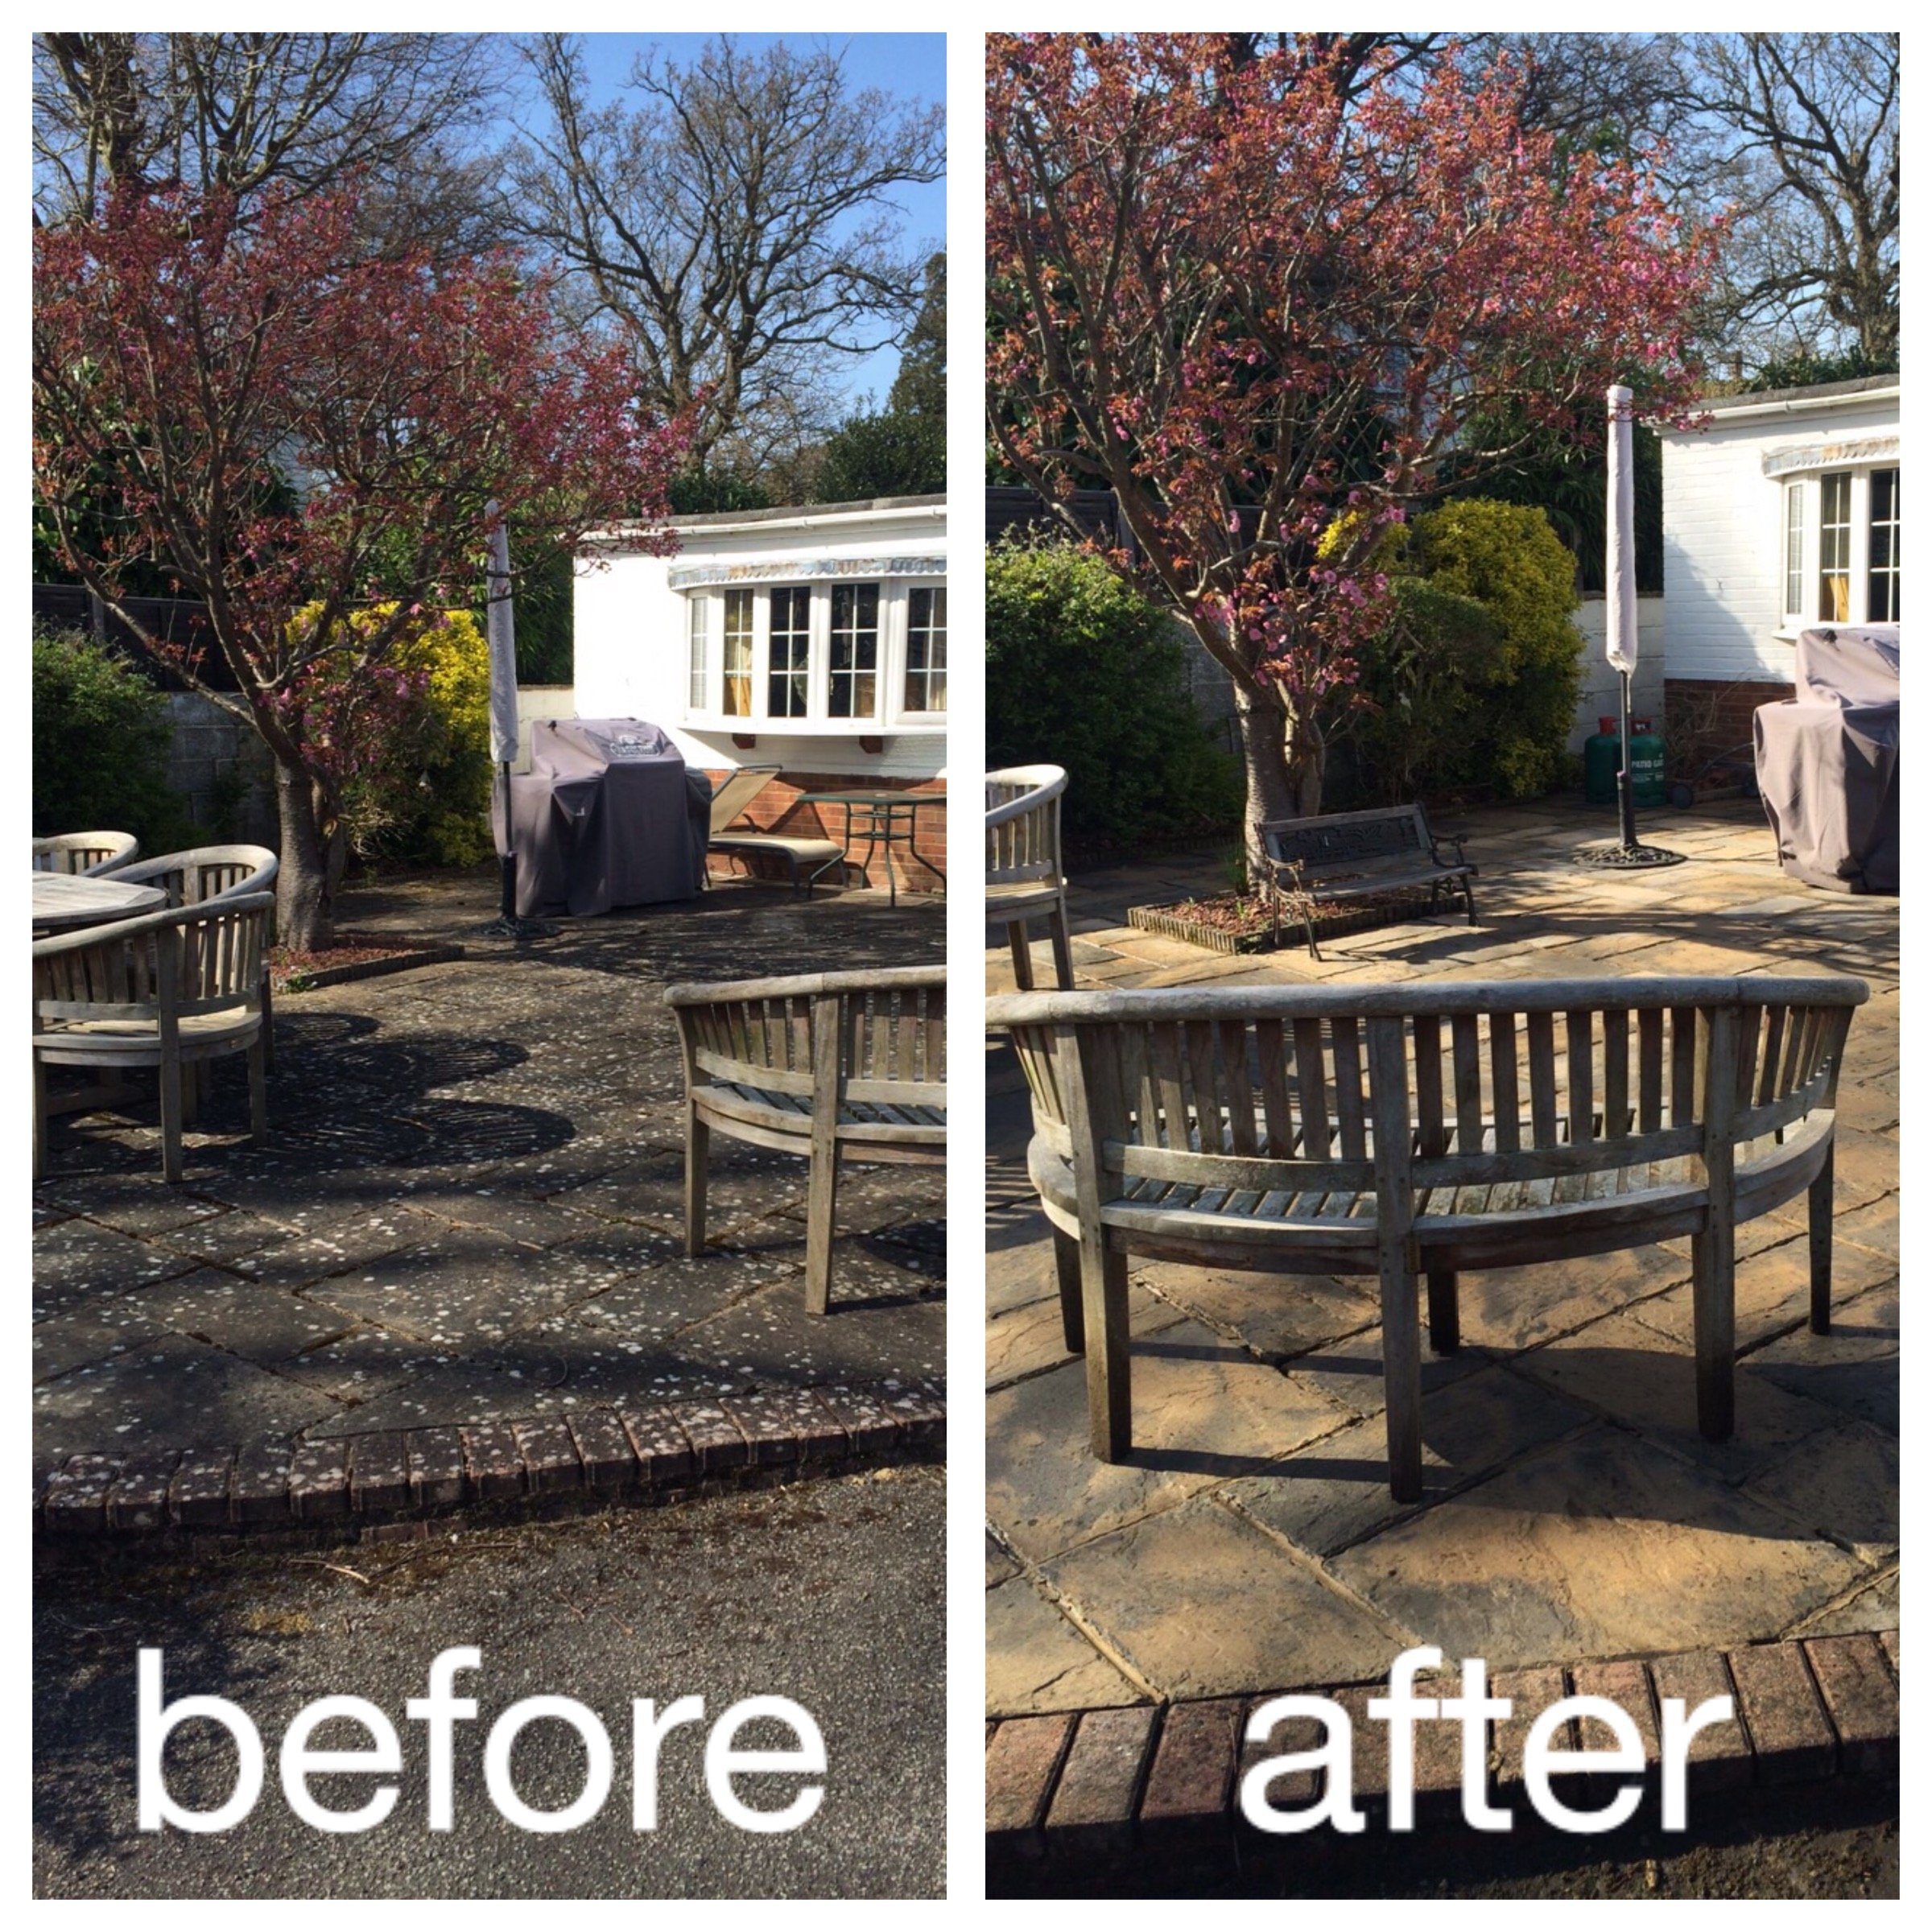 before and after garden area cleaning